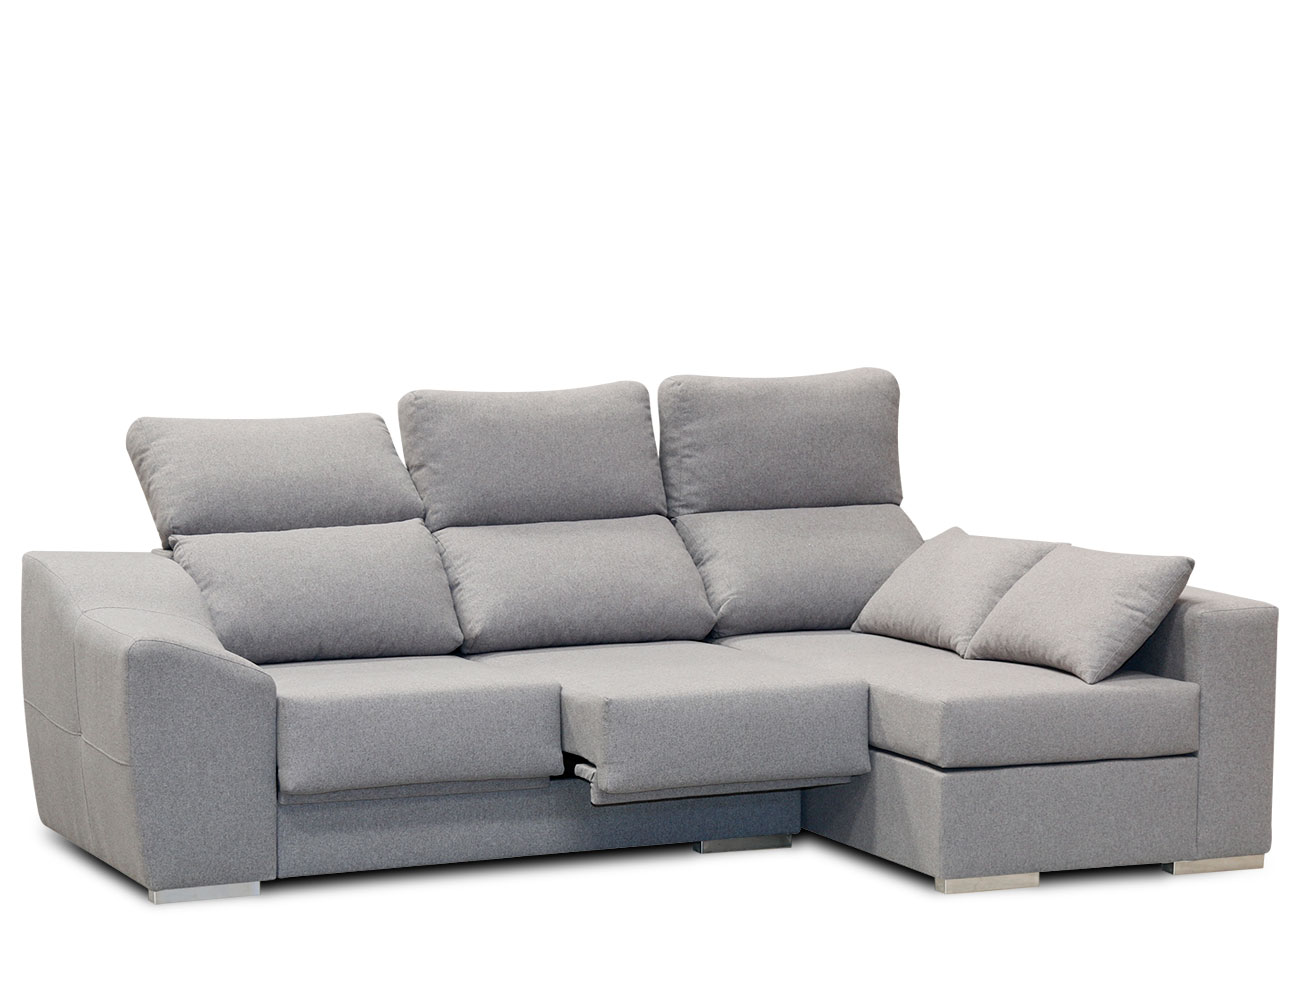 Sofa chaiselongue moderno gris 31